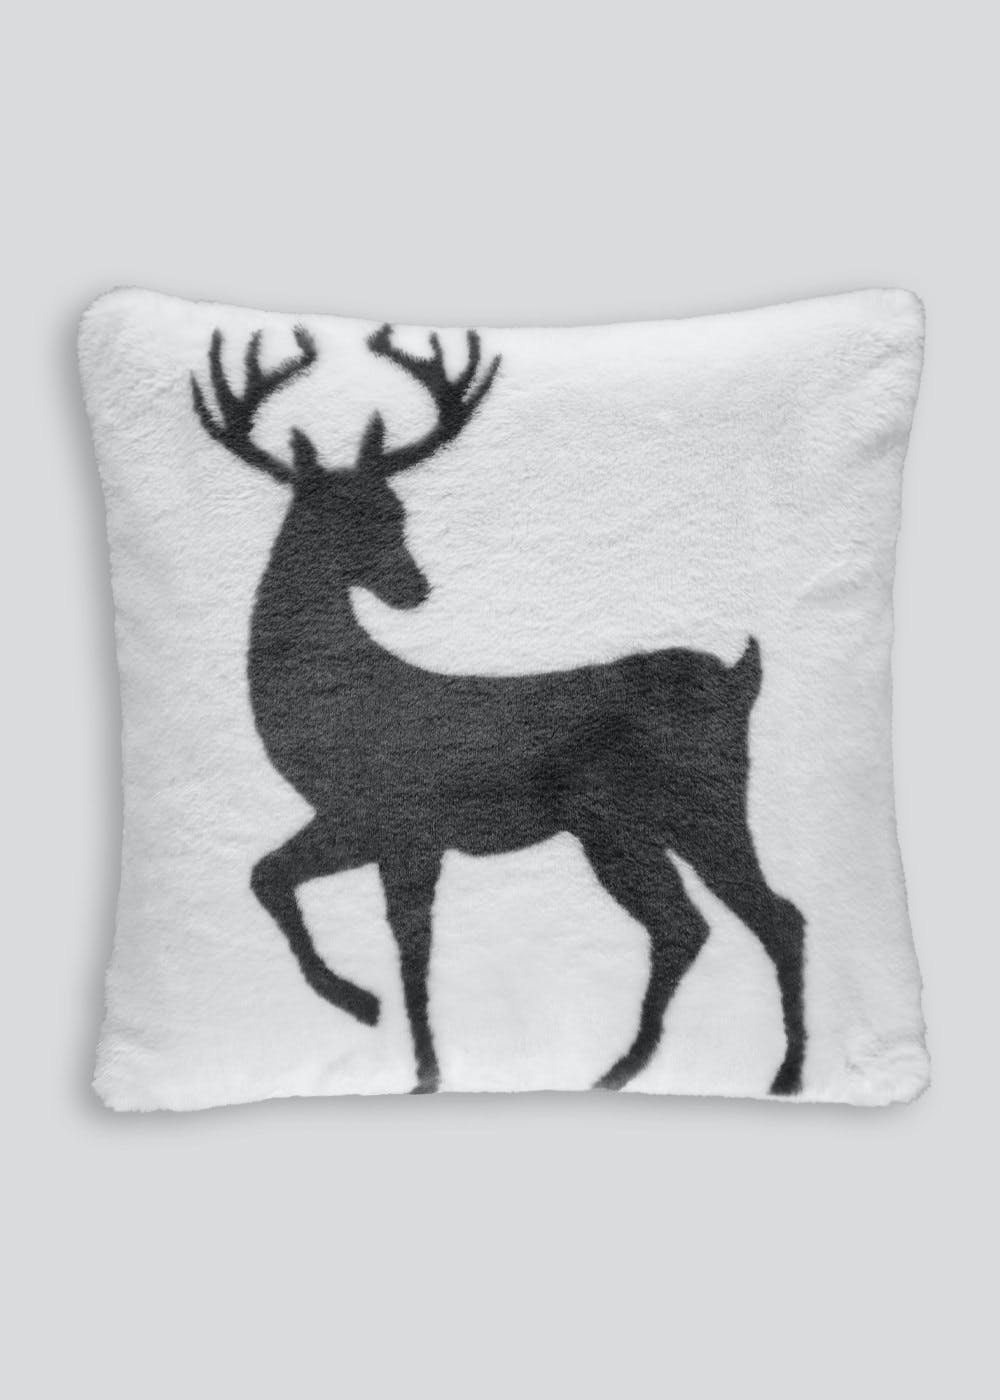 XMAS Duvet//Quilt Cover Set In 3 Designs Xmas Stag /& Reindeer Special Offers